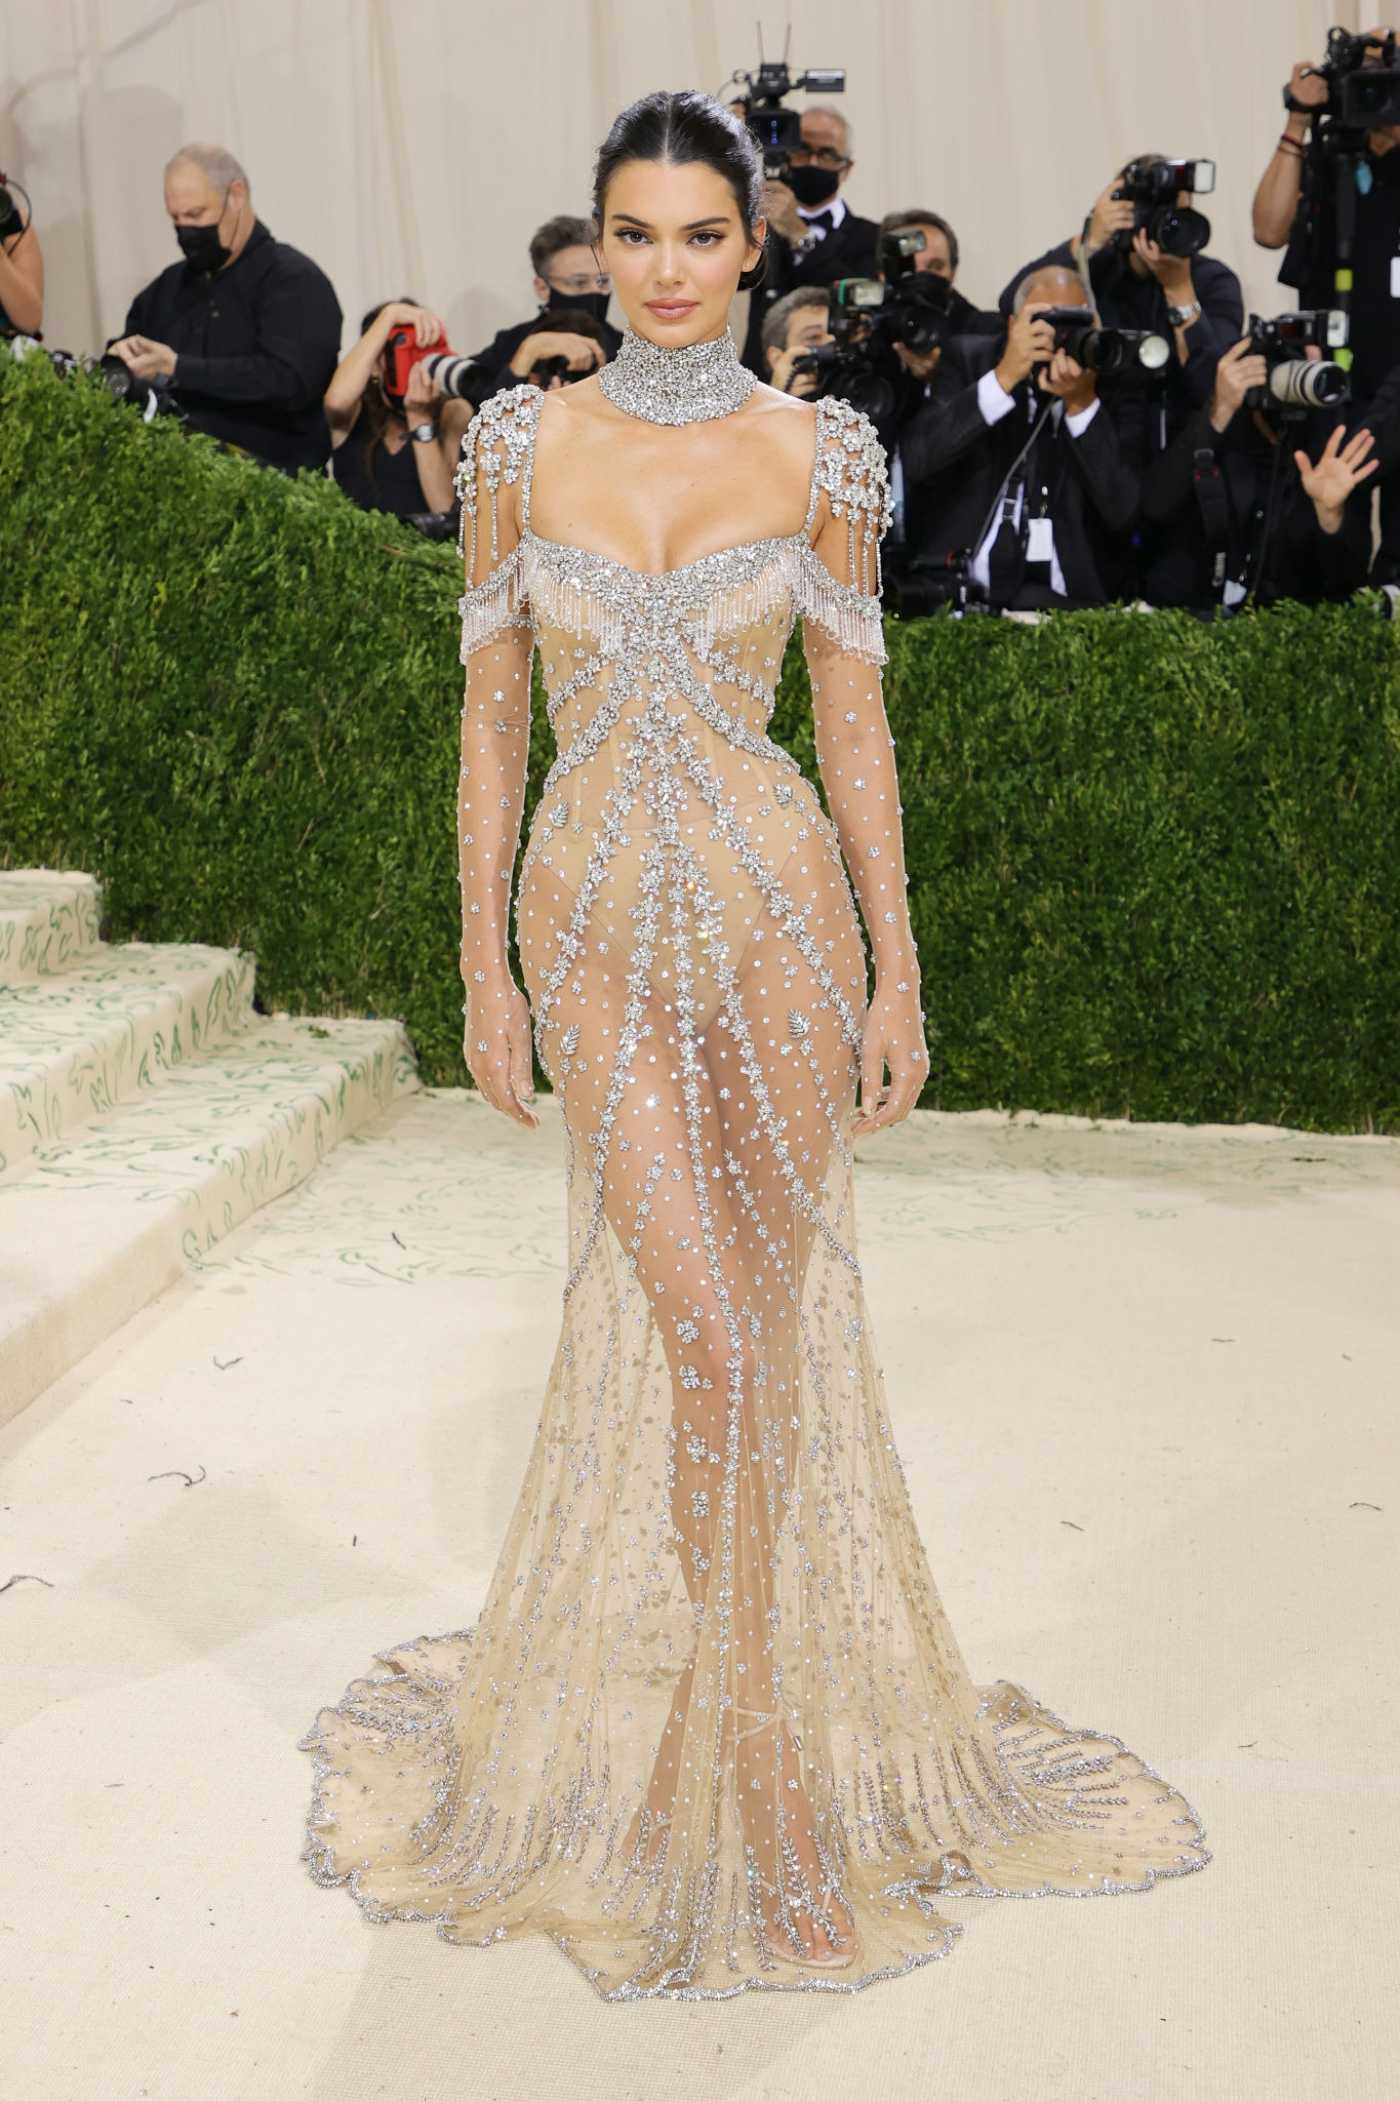 Kendall Jenner Attends 2021 Met Gala In America: A Lexicon of Fashion at Metropolitan Museum of Art in New York City 09/13/2021